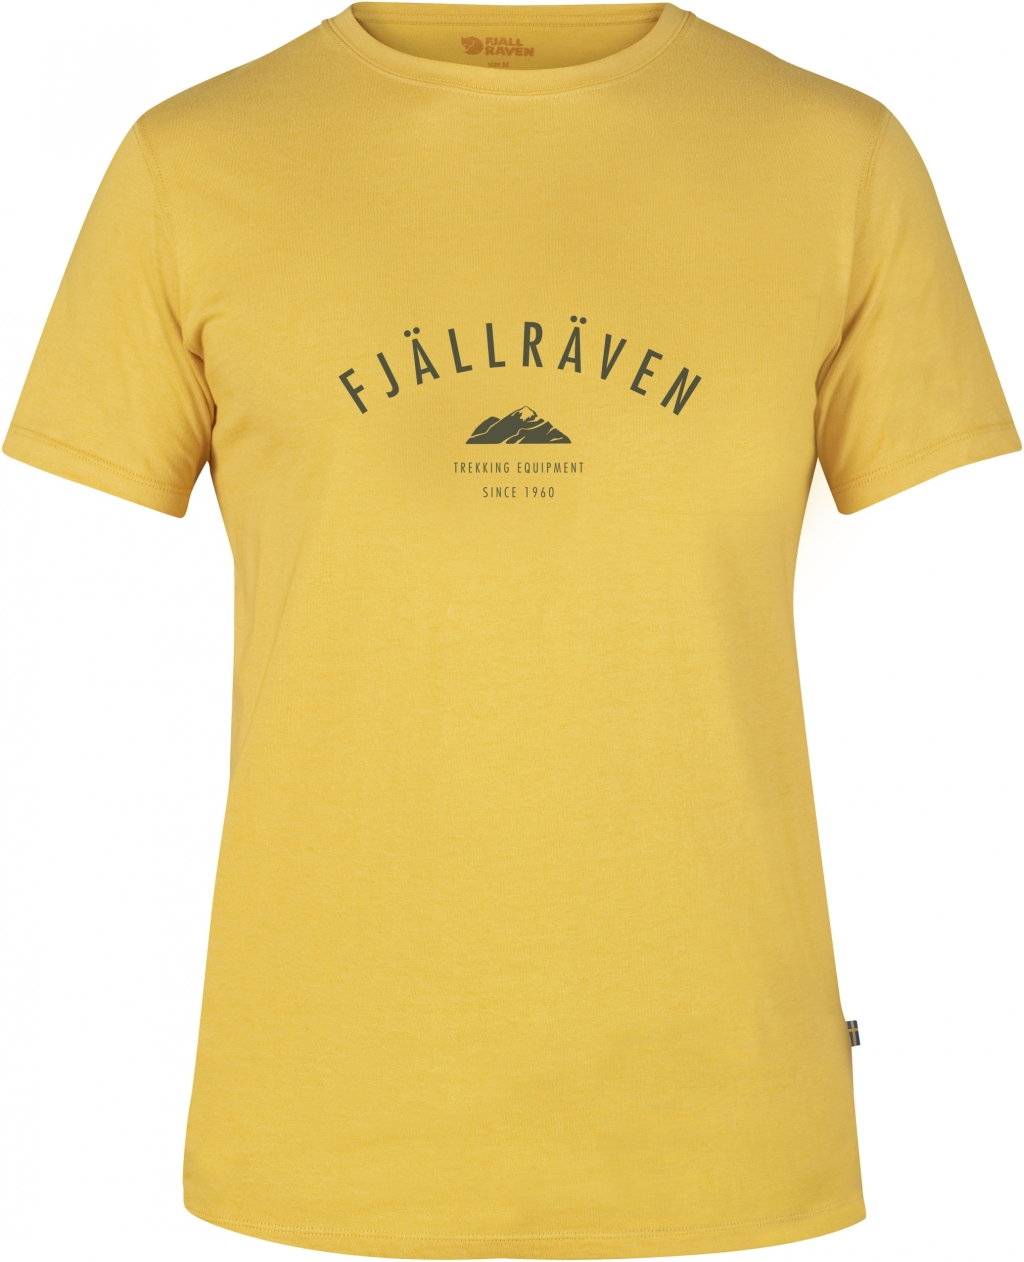 FjallRaven Trekking Equipment T-shirt Ochre-30